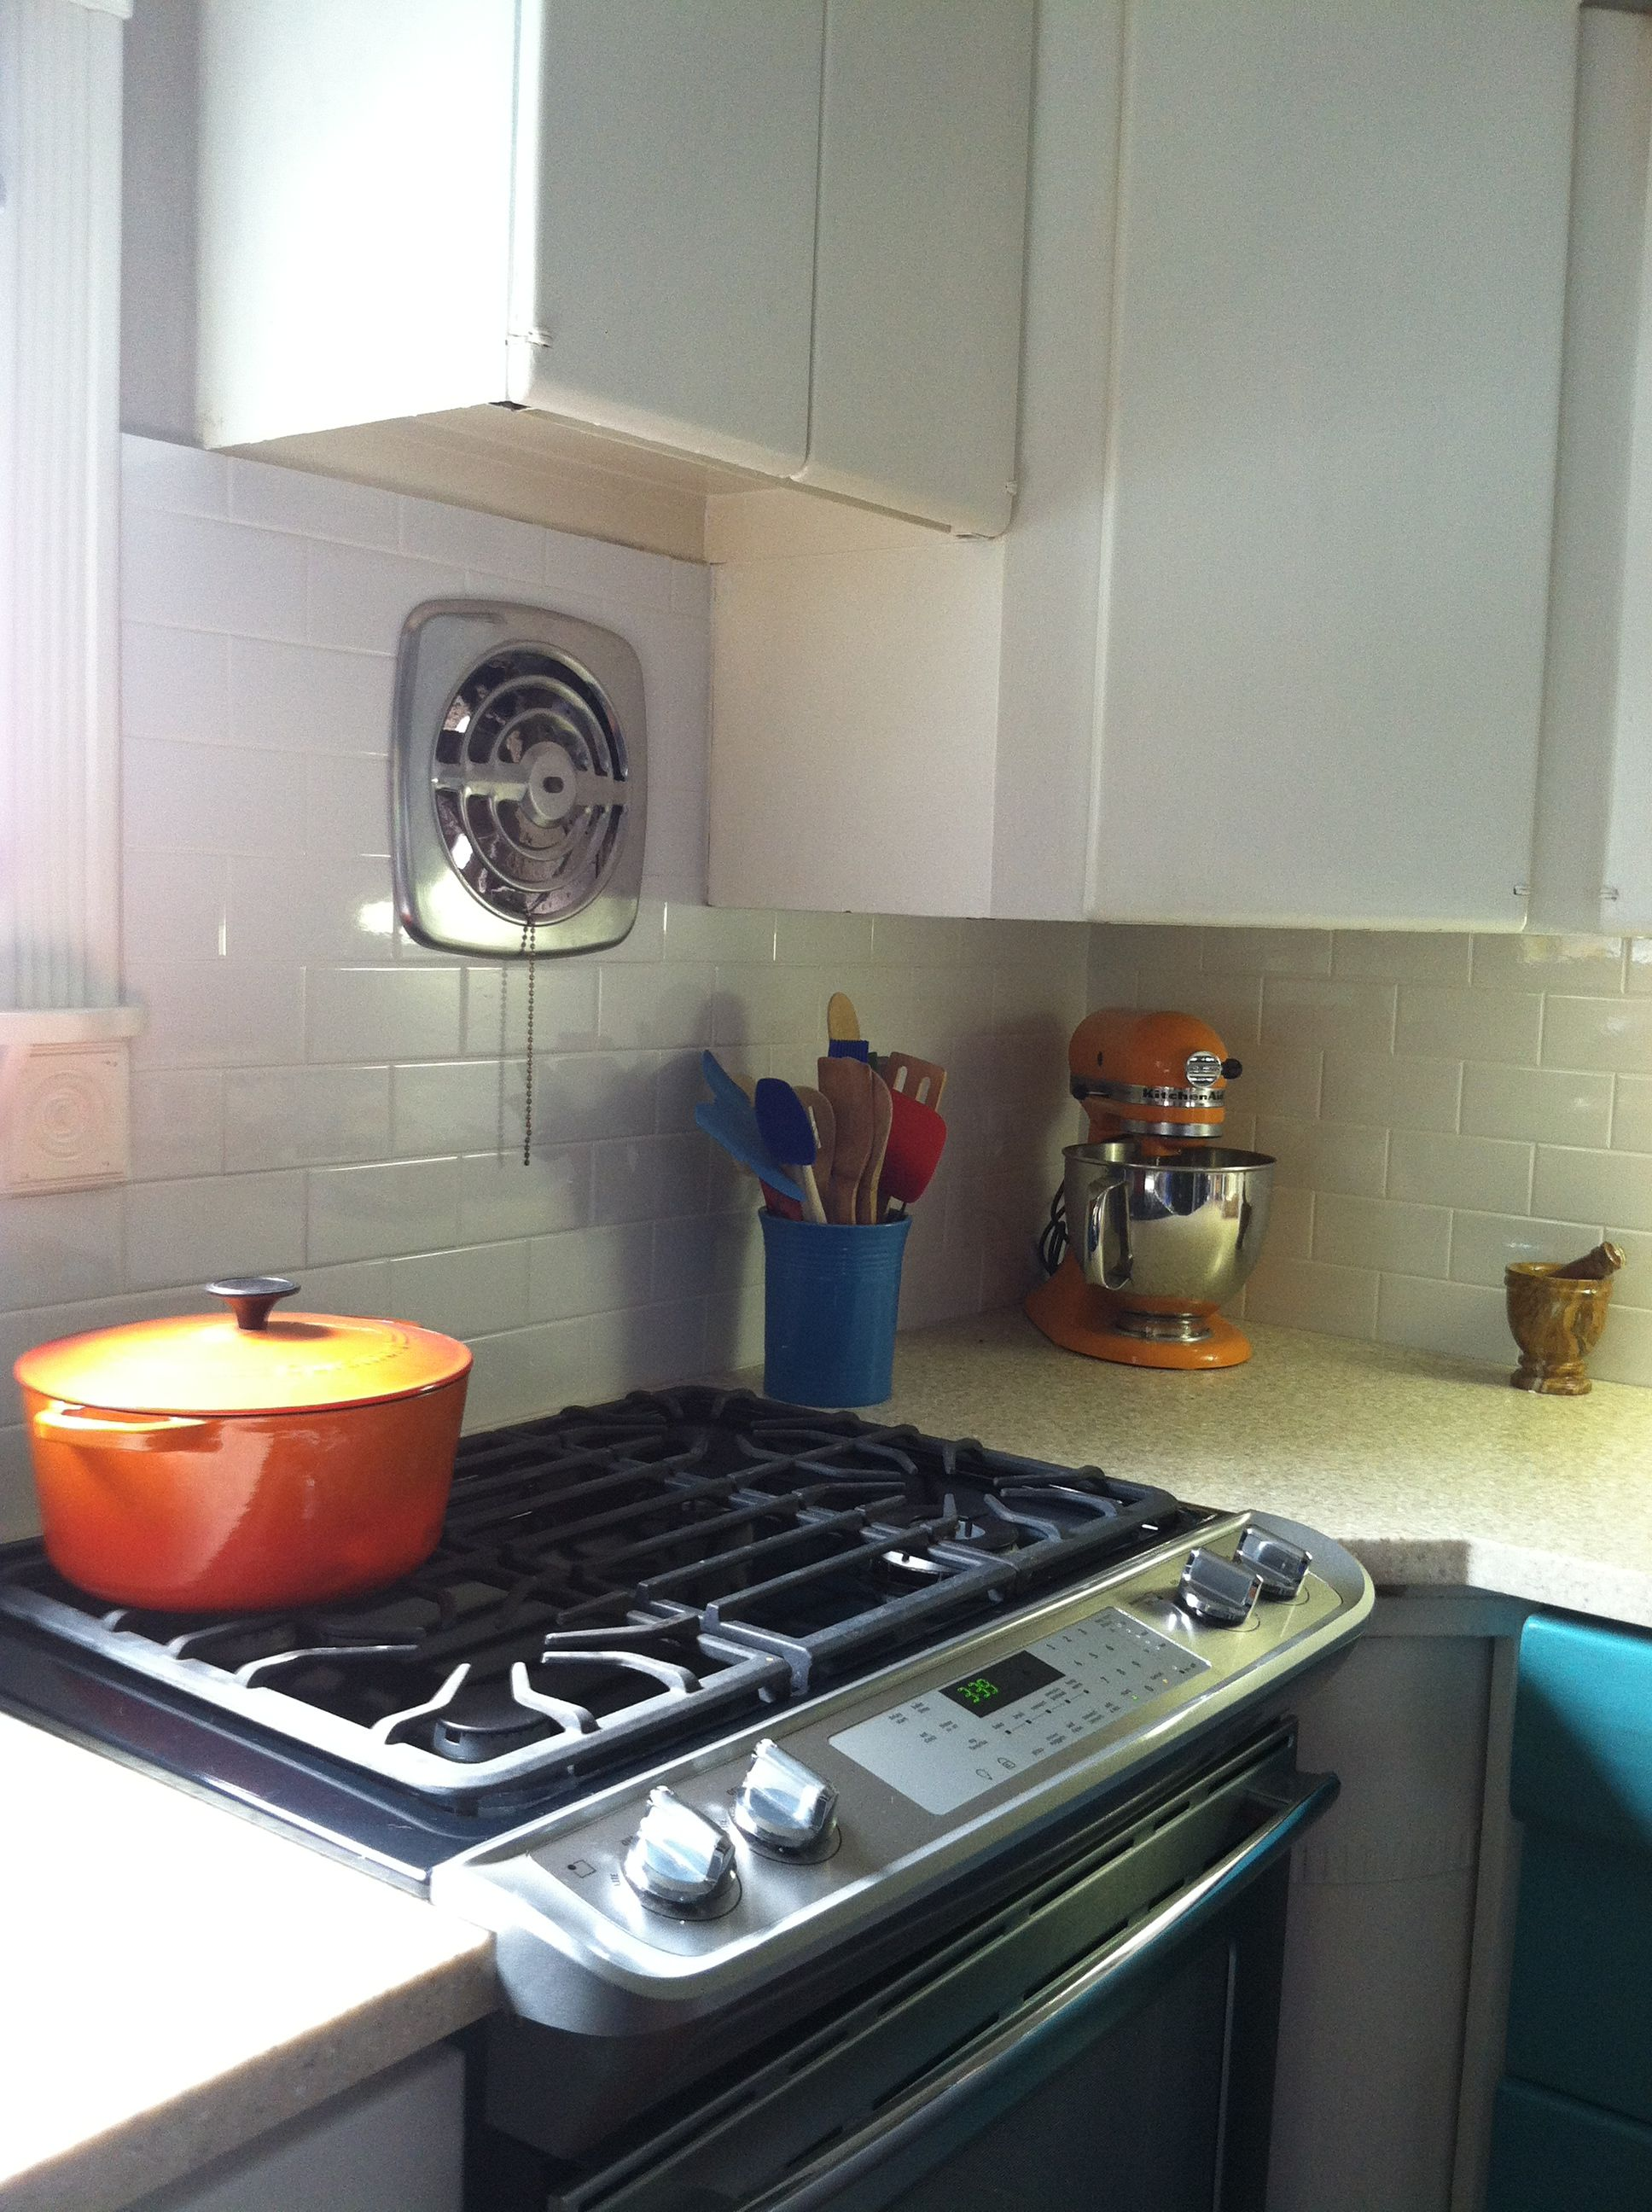 canopy rapflava interesting range fume in on exhaust extractor kitchen fan hood fans vent vents